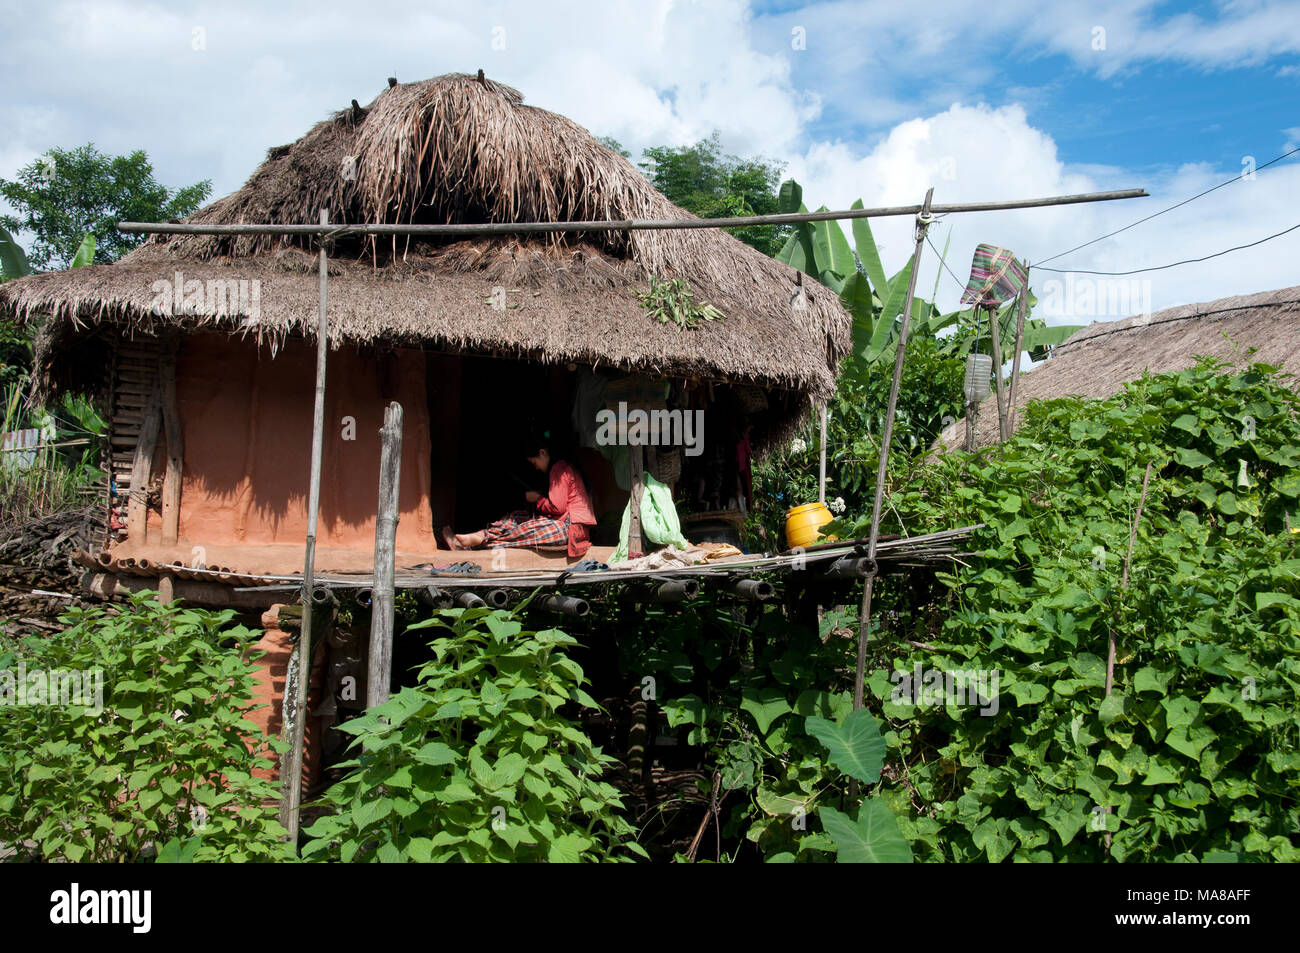 Women Sitting On The Bamboo Terrace Of A Traditional House Made From Wood  And Mud (wattle And Daub Stock Photo: 178434131   Alamy